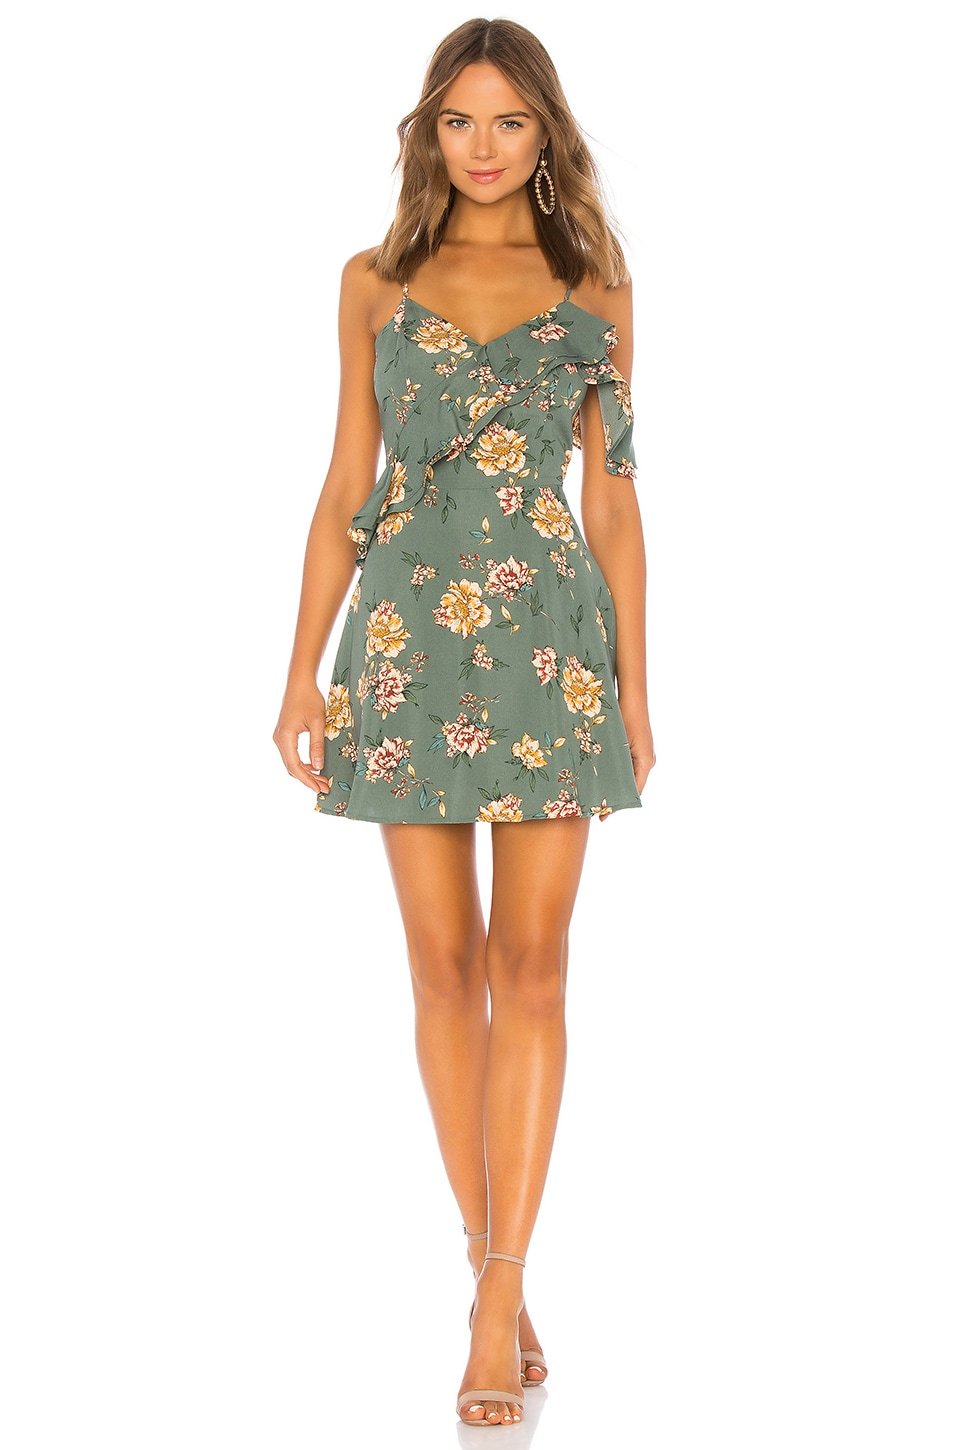 J.O.A. One Shoulder Ruffle Fit And Flare Dress in Green Floral